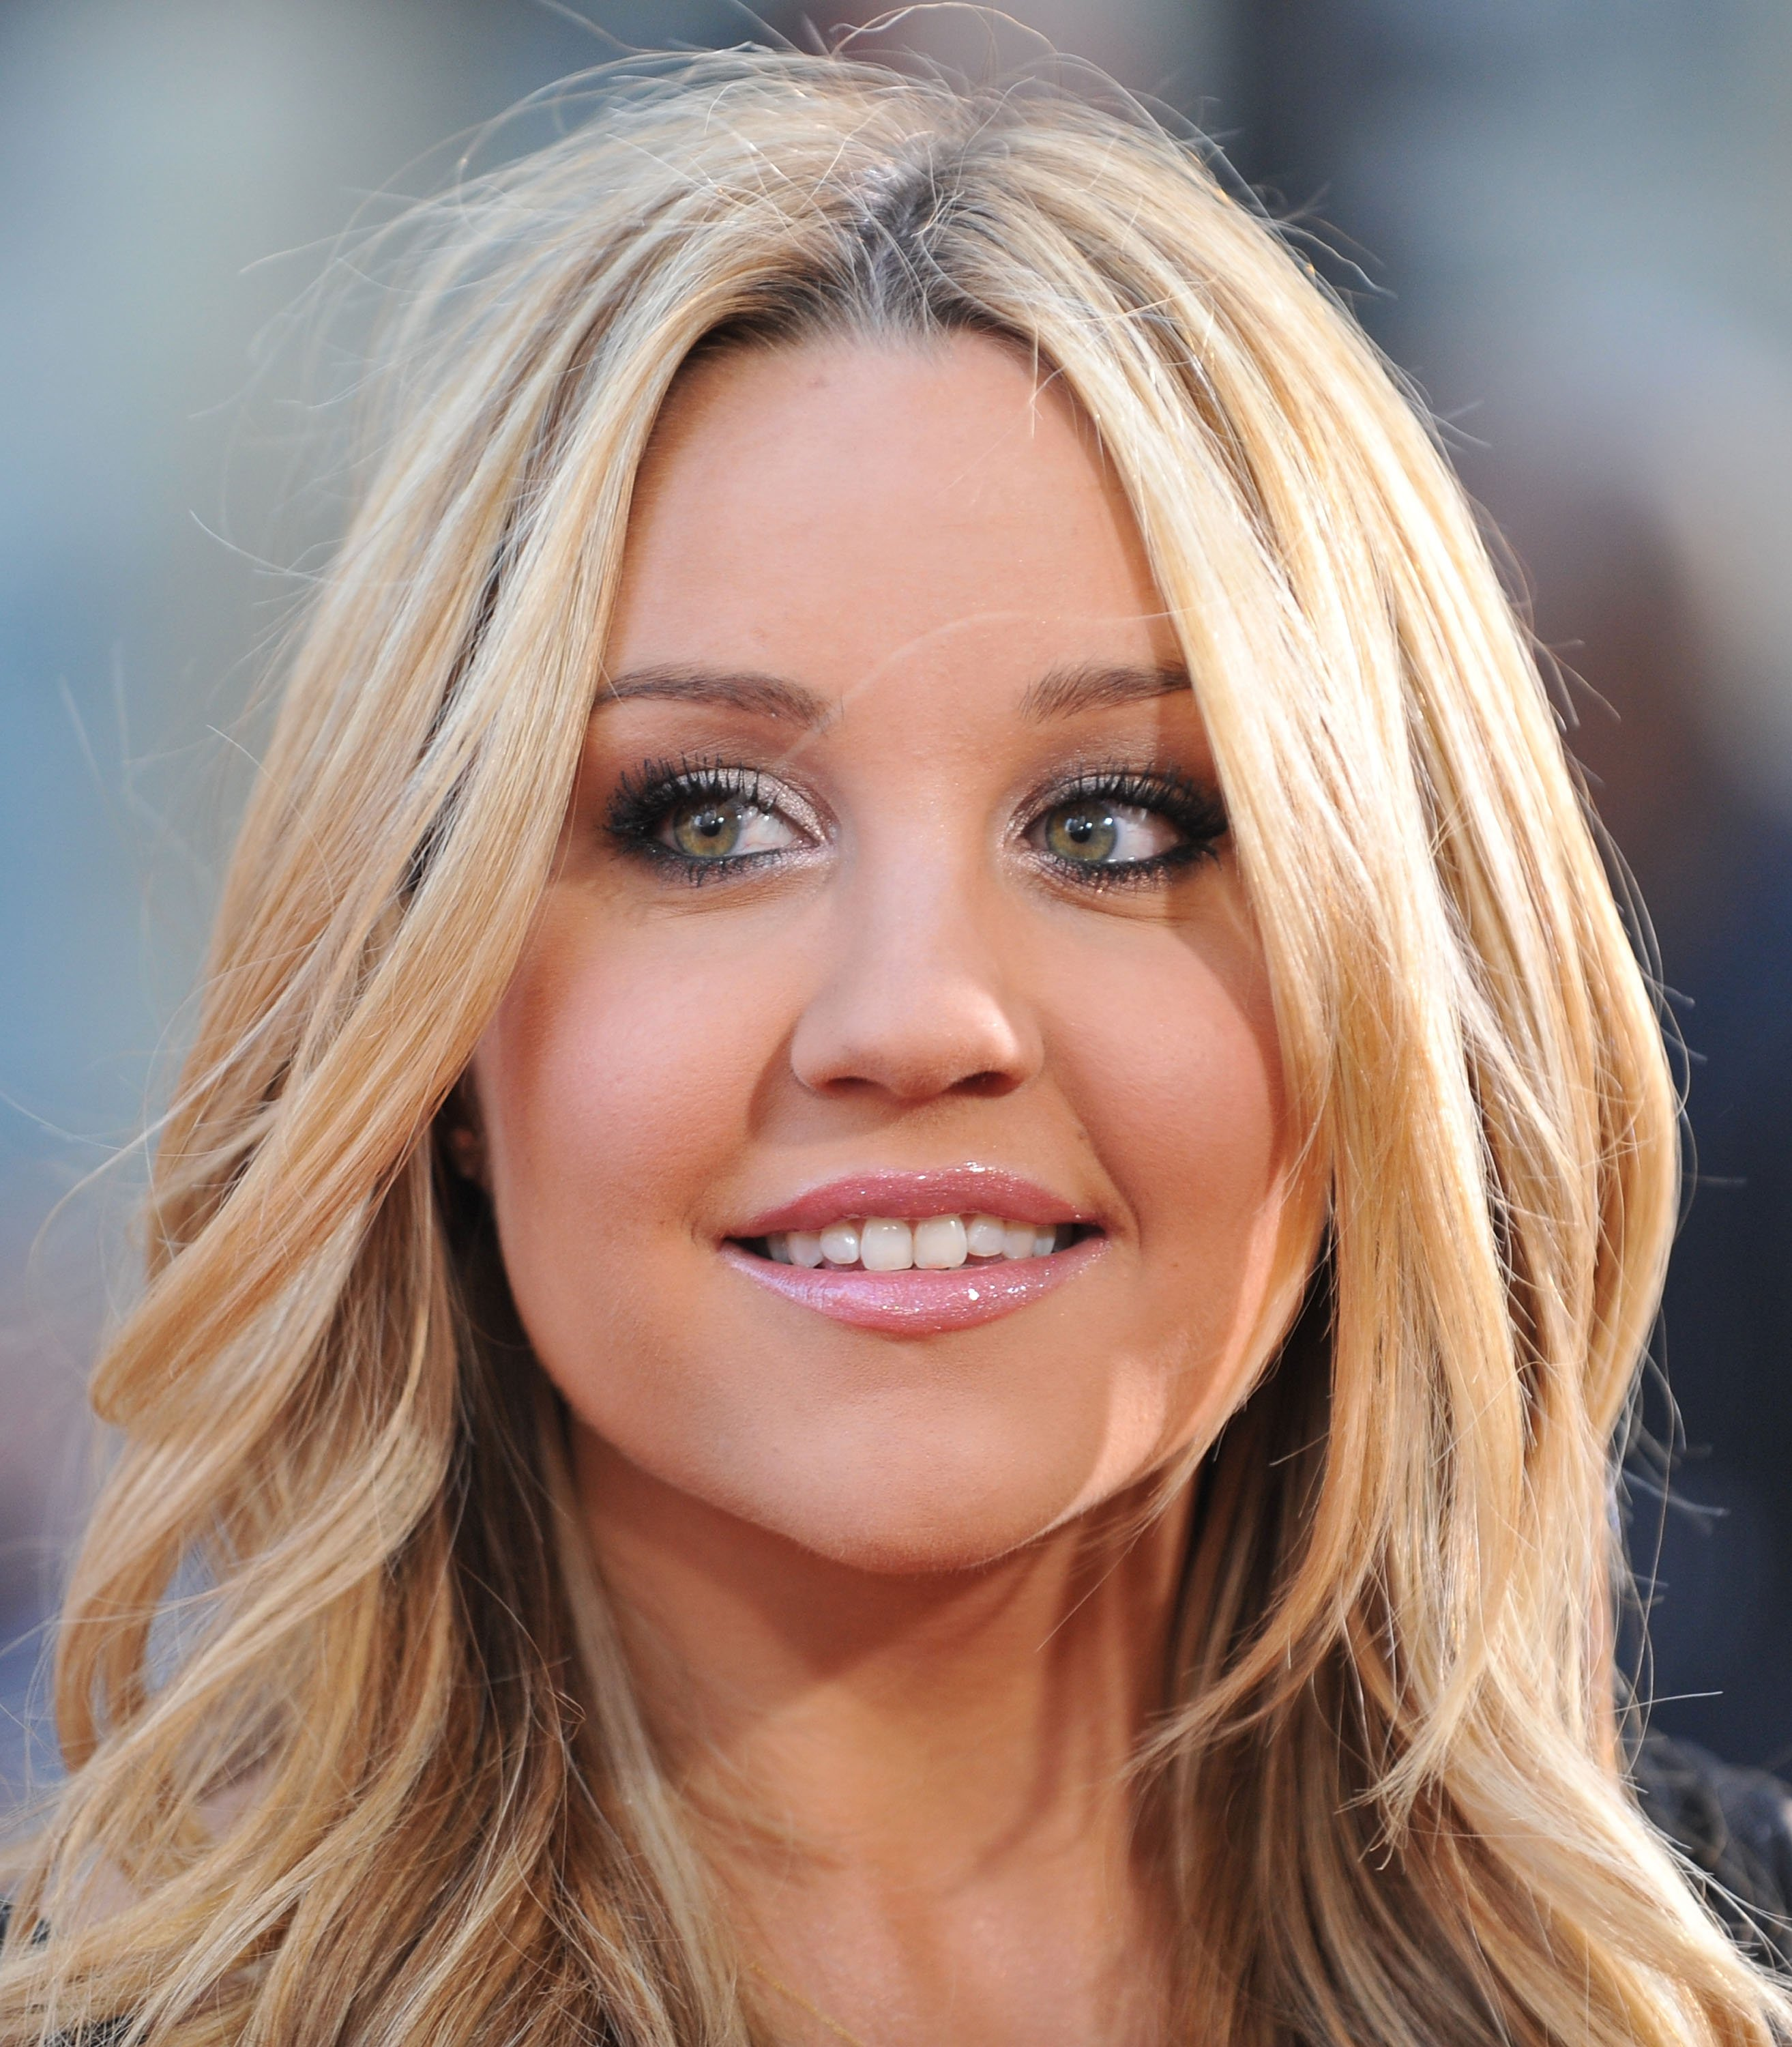 """Amanda Bynes attends the LA premiere of """"17 Again"""", 2009   Photo: Getty Images"""